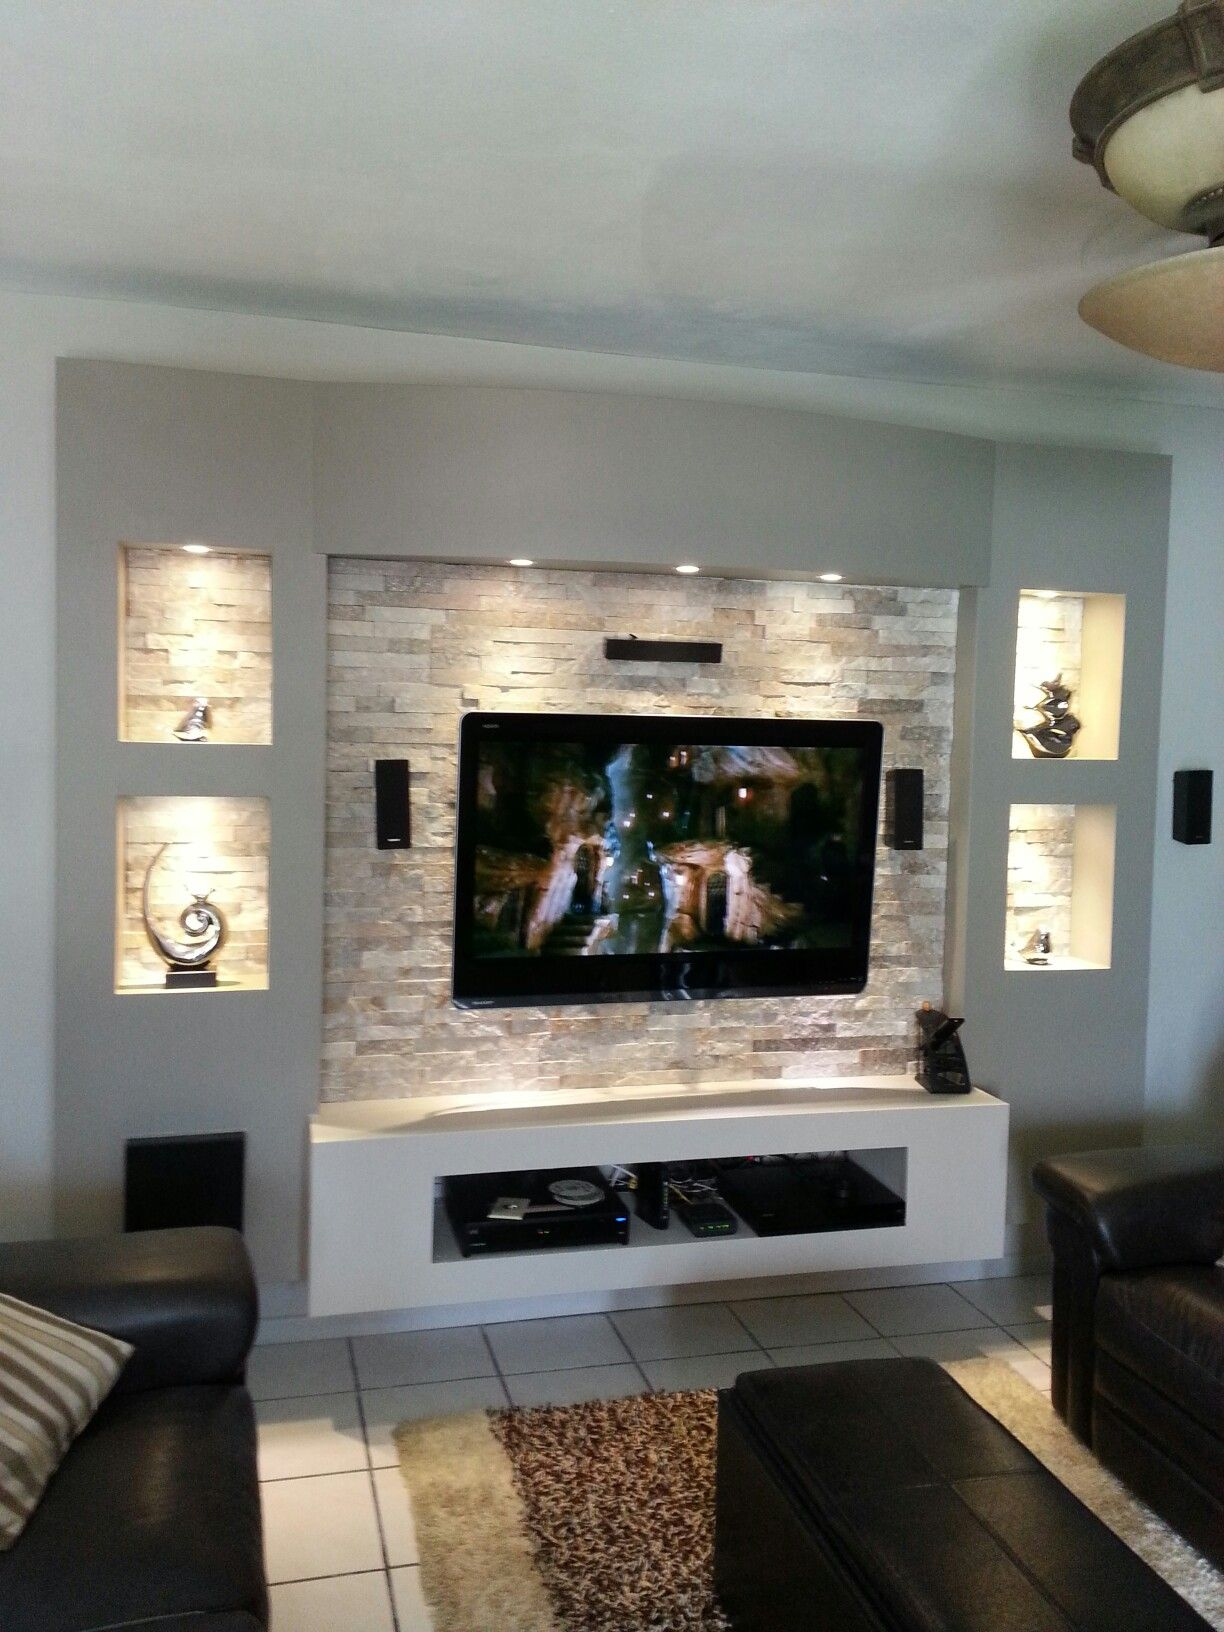 Tv Units Design In Living Room - emiliesbeauty.com -